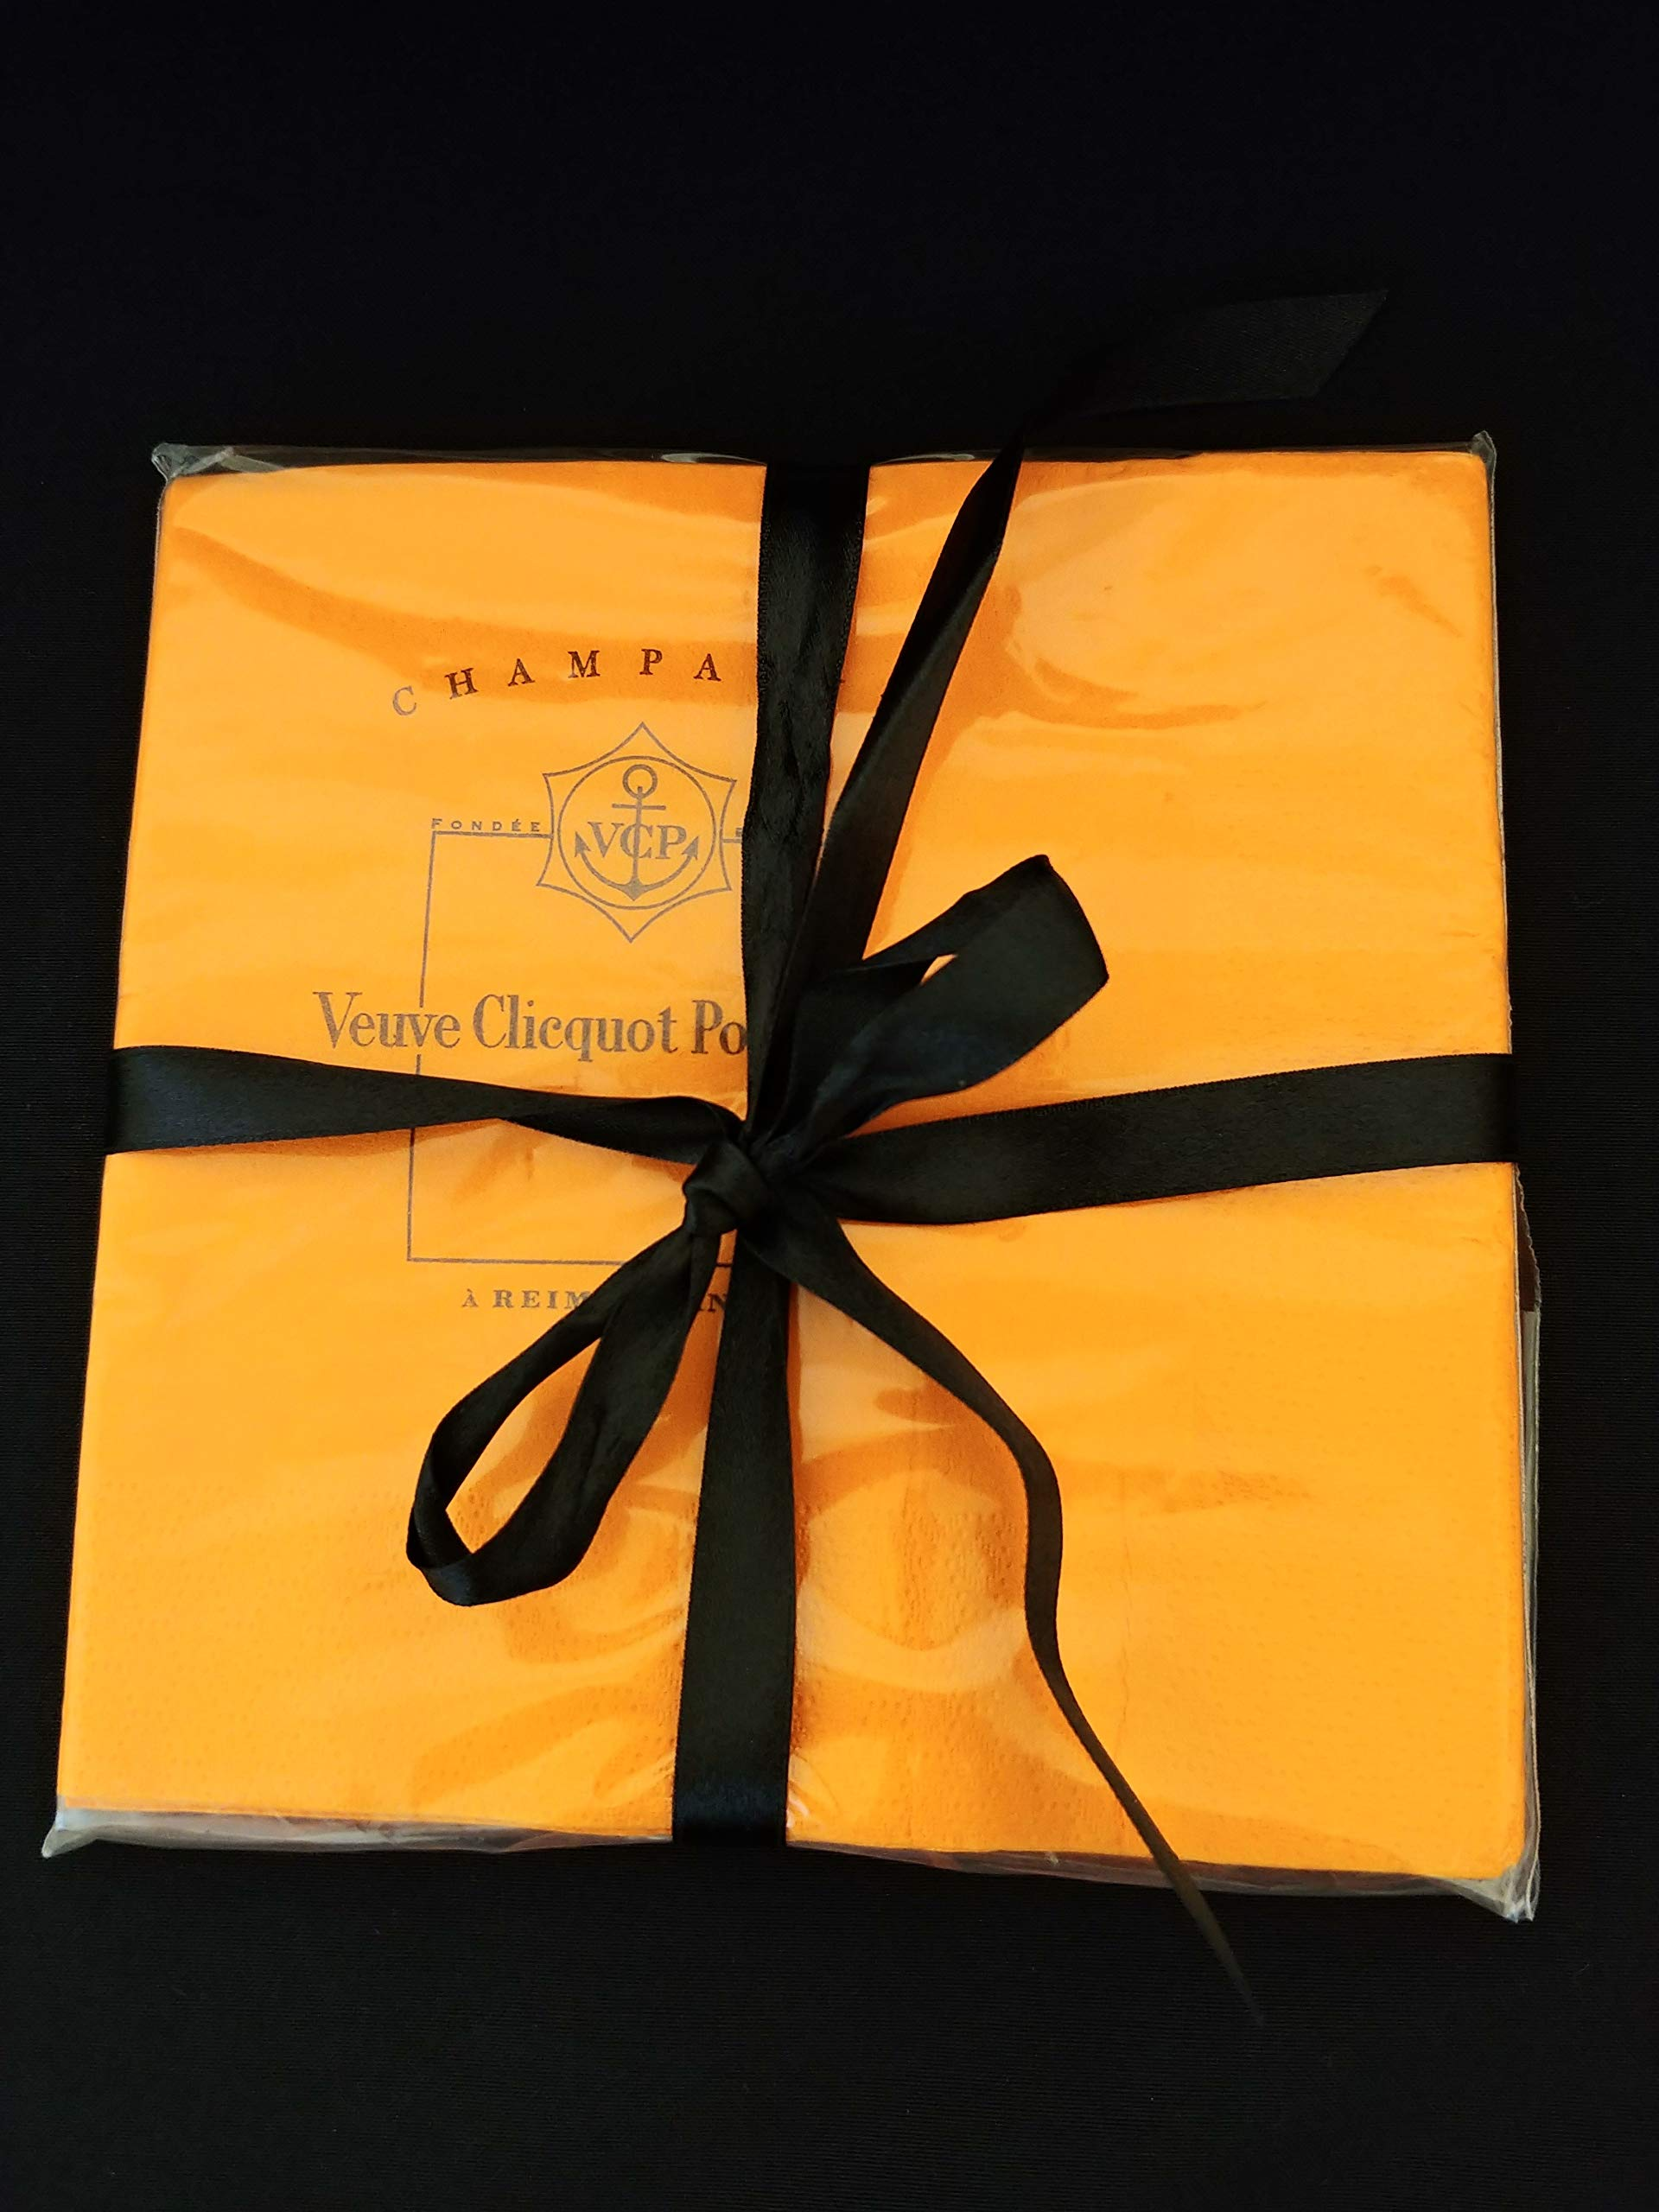 Veuve Clicquot Ponsardin Yellow Label Champagne Accessory Cocktail Napkin 8 pack